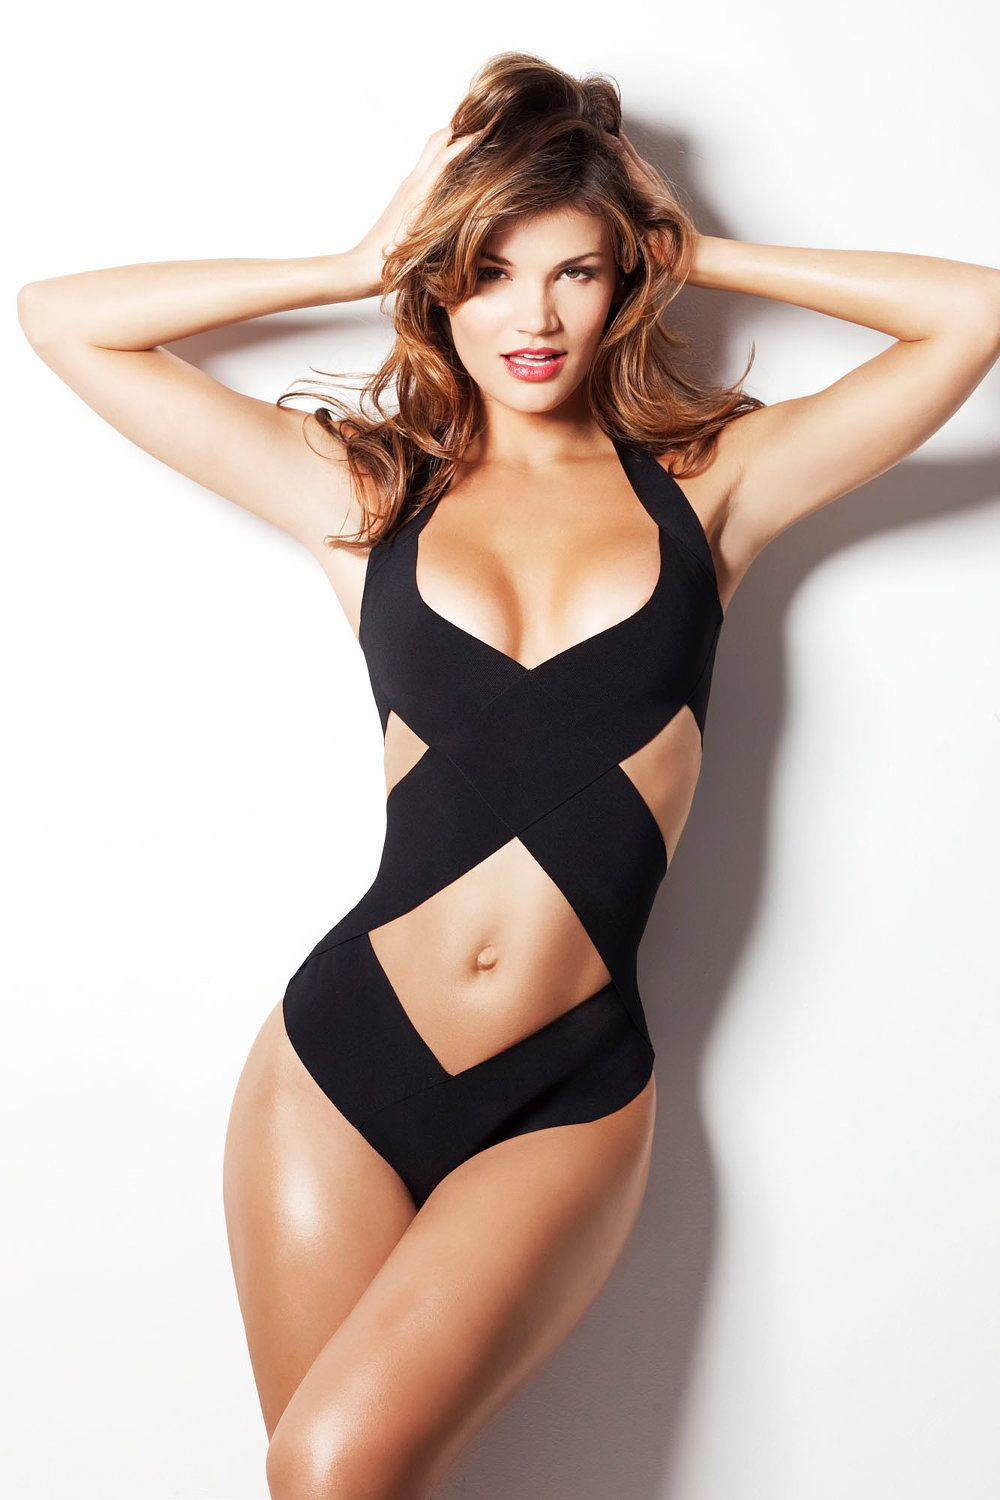 5fca5a88f29 Bandage swimsuit  bathing suit as seen in GQ